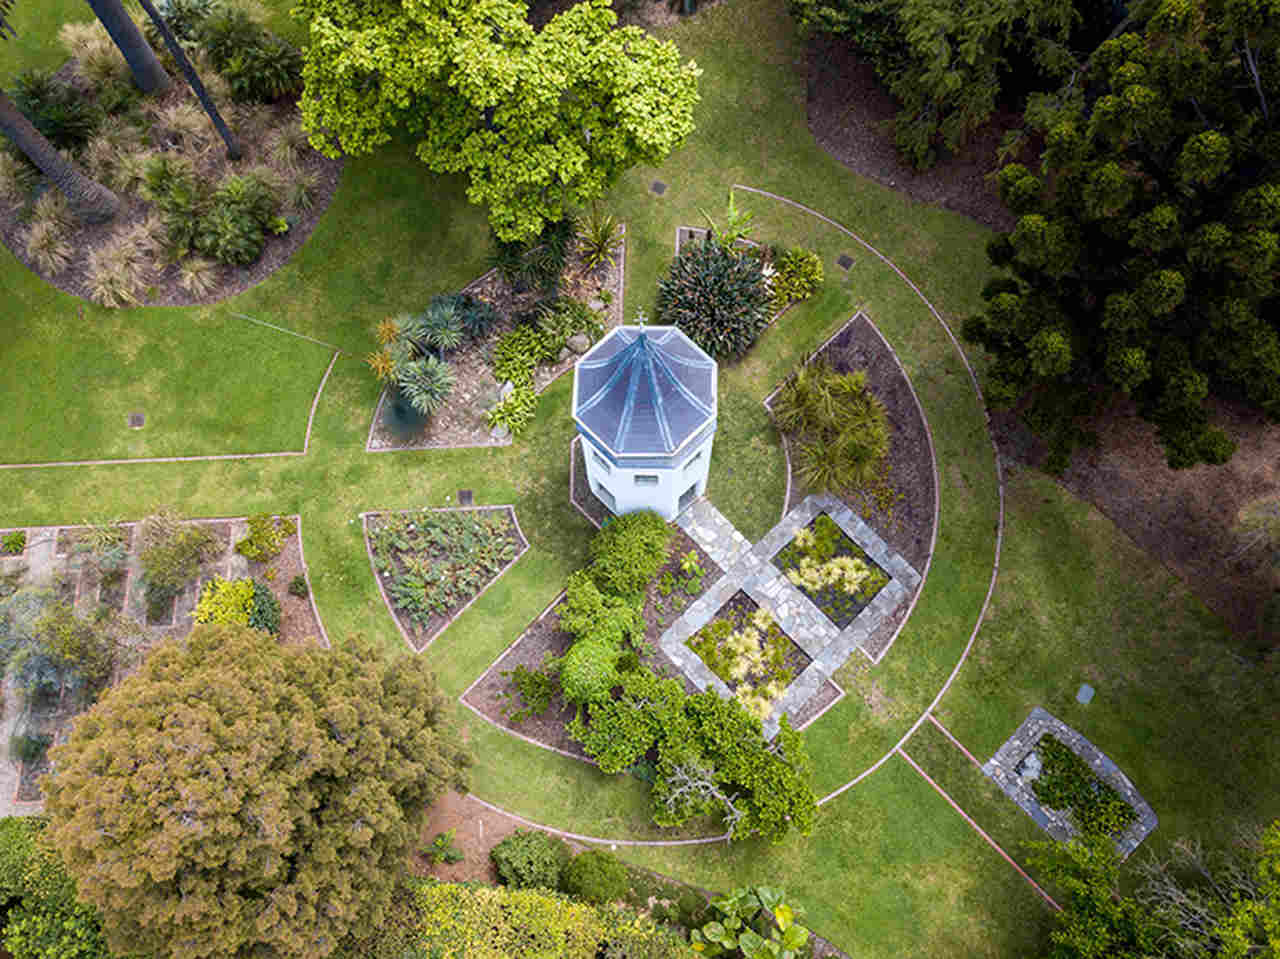 Aerial photography, Bird's-eye view, Photography, Landscape, Estate, Land lot, Urban design, University of Melbourne